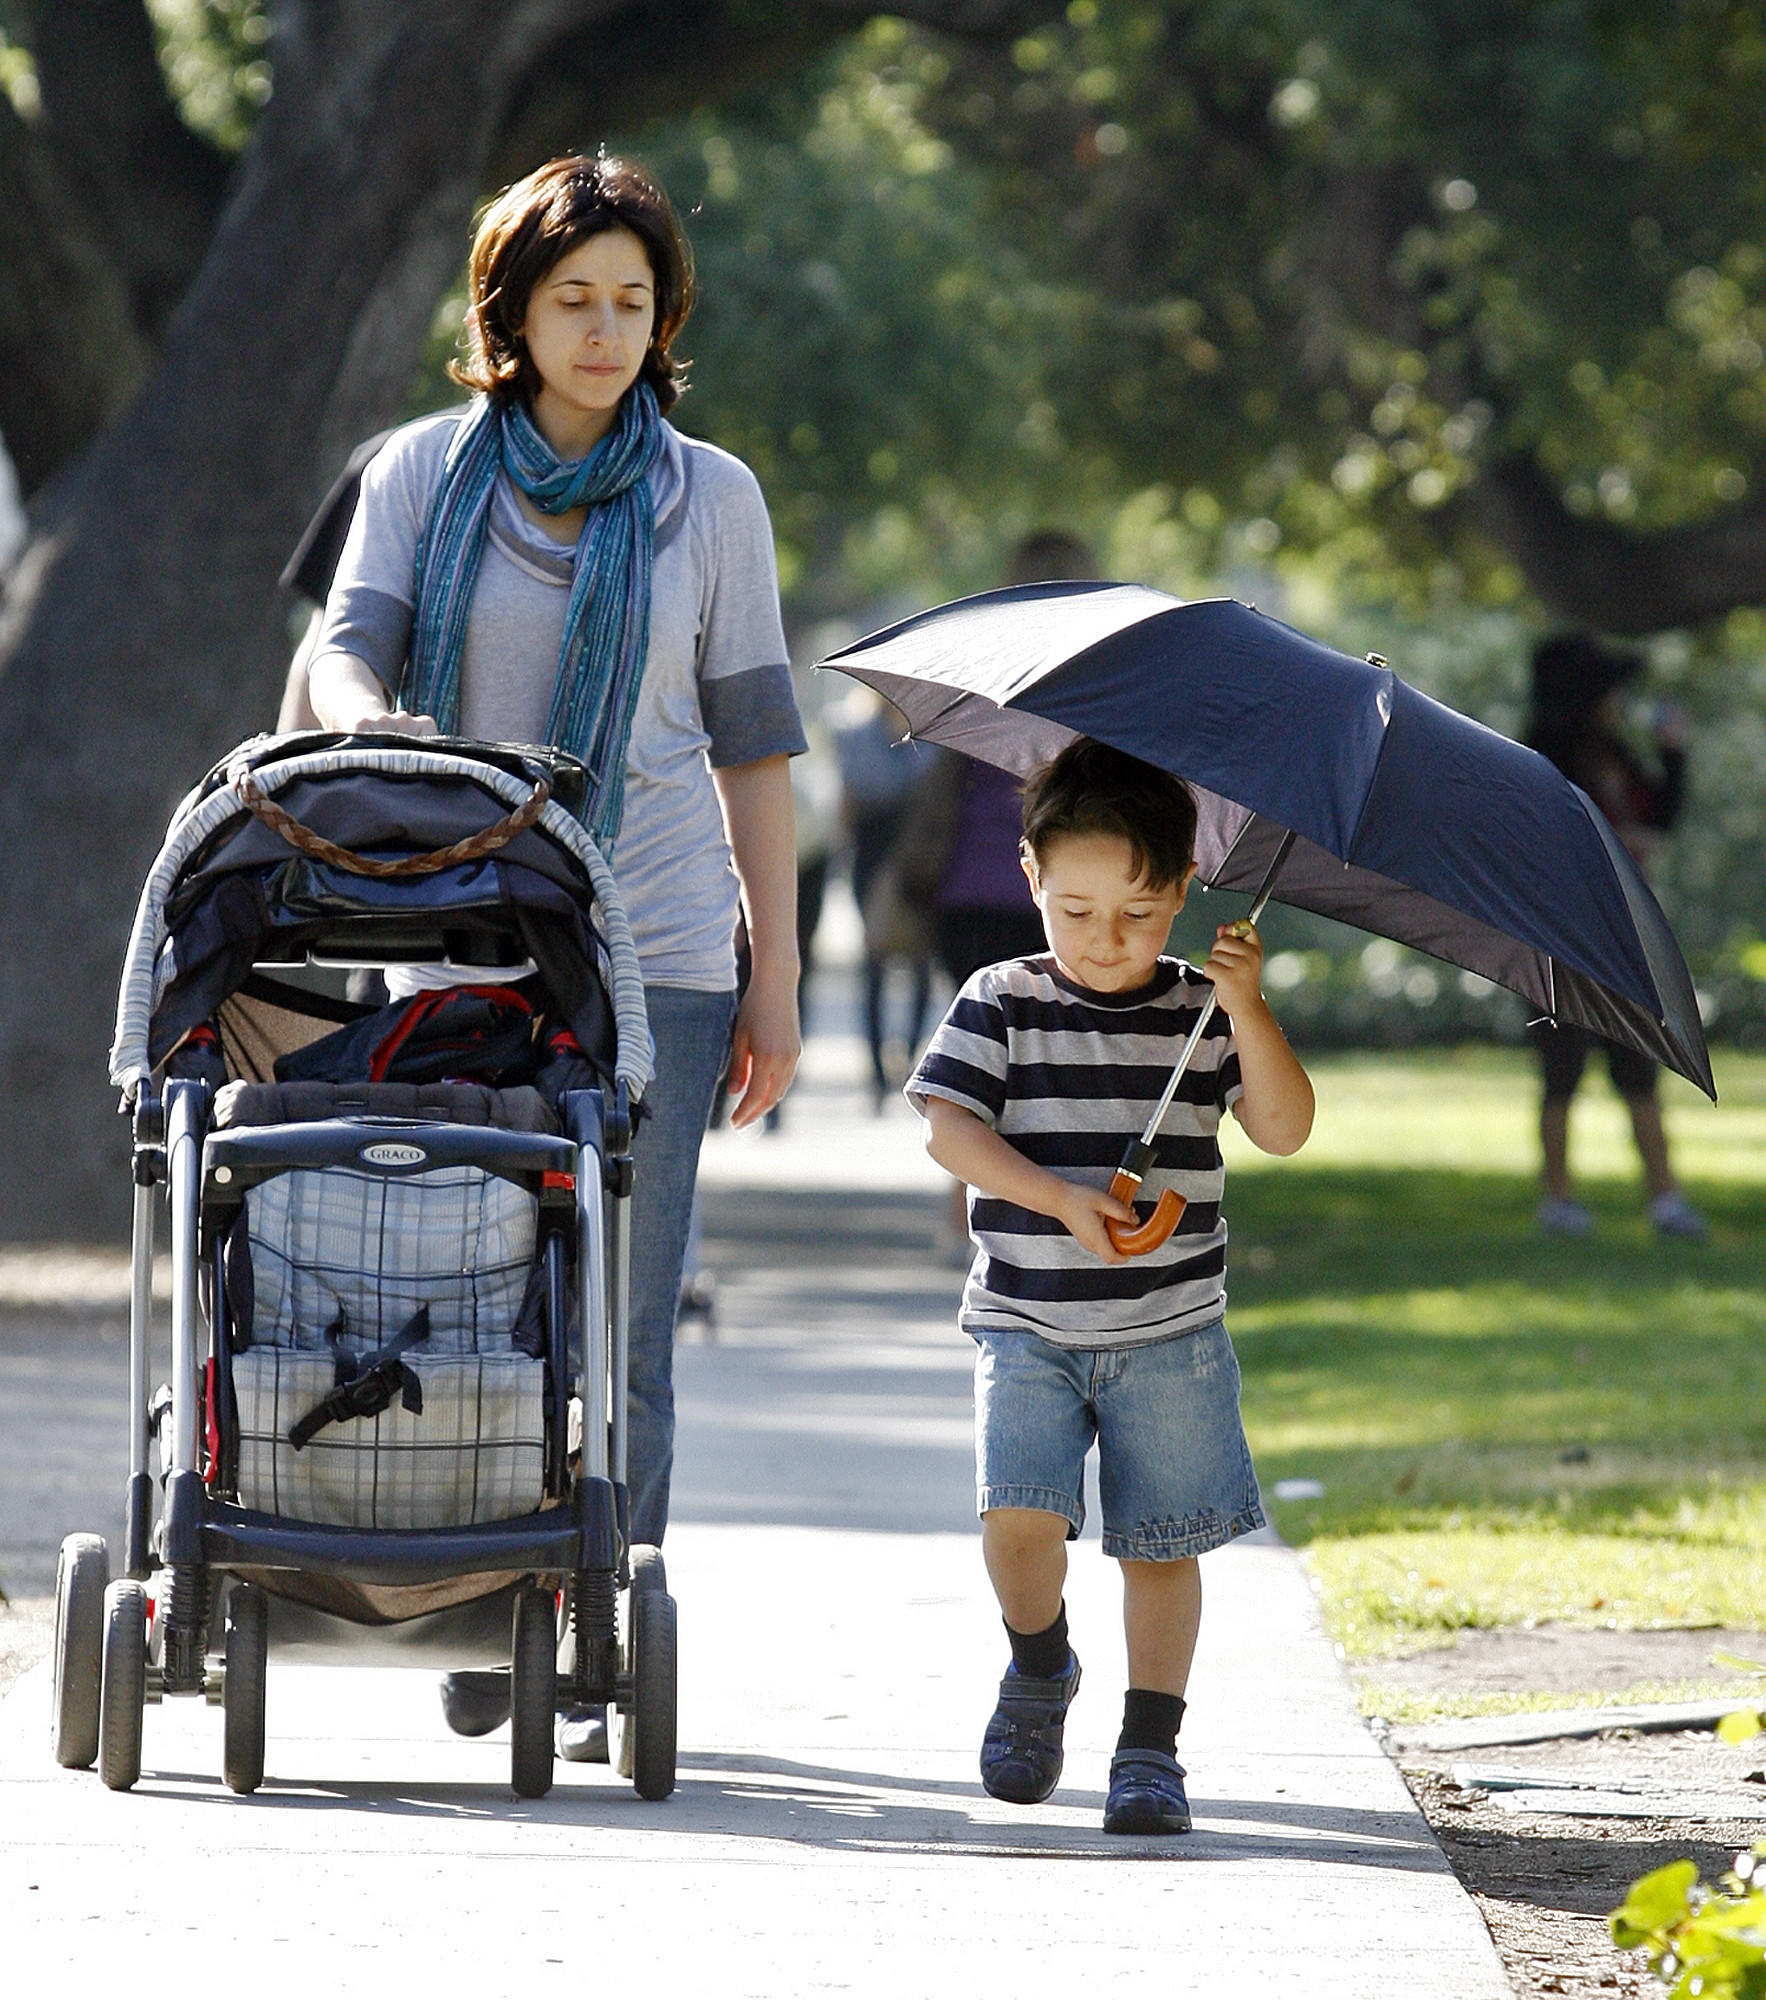 File Photo: Edgar Galstyan, then 3, holds an umbrella, partly to keep from the sun, but more for play, as he walks home with his mom Lusine Tsaturyan after making the morning drop off of a sibling at R.D. White Elementary School in Glendale on May 9, 2012.